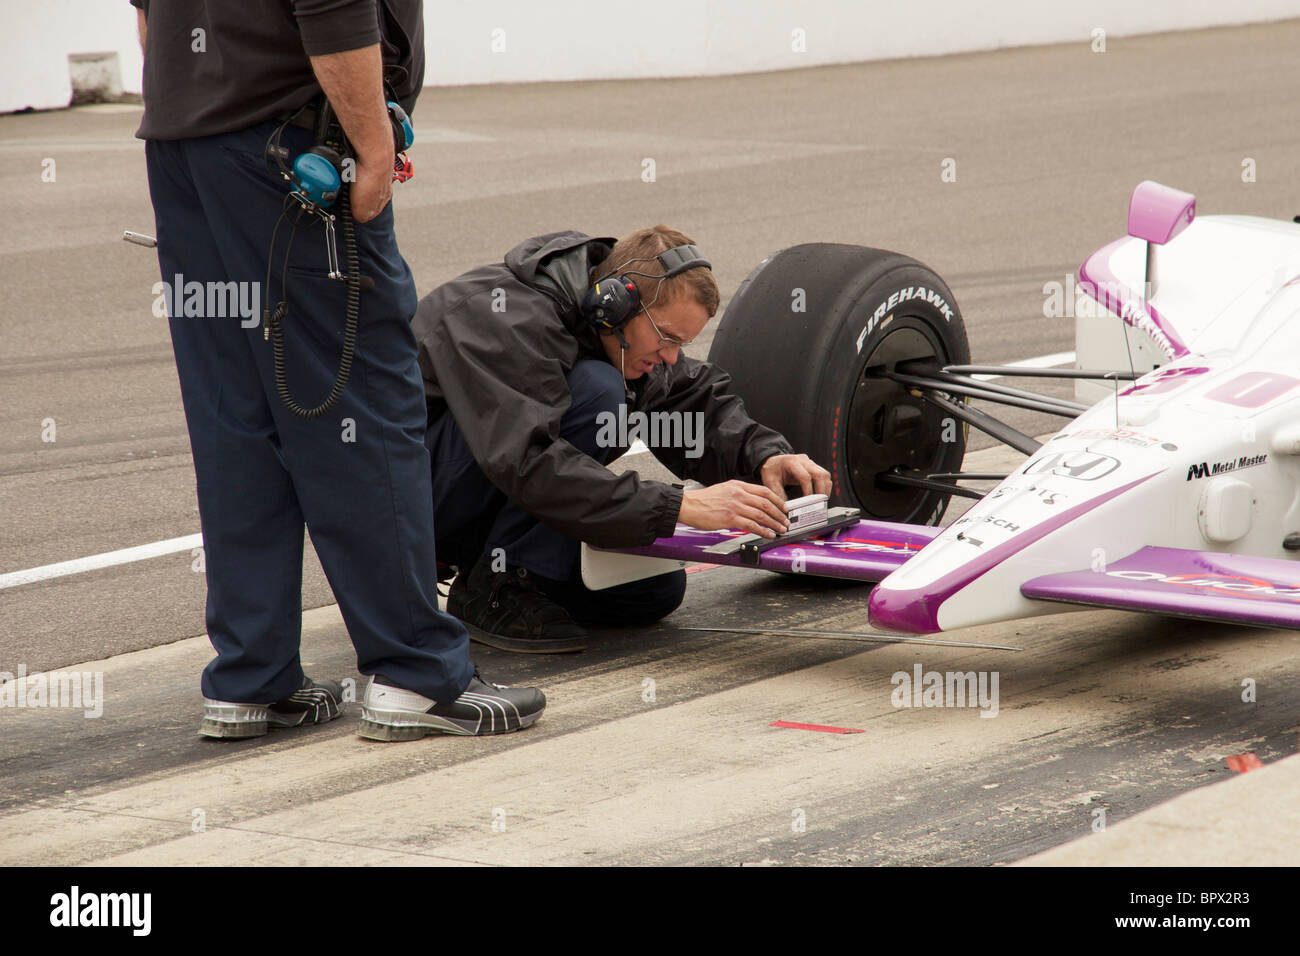 Pit crew member adjusts front wing of IndyCar during 2010 500 practice at Indianapolis Motor Speedway. - Stock Image